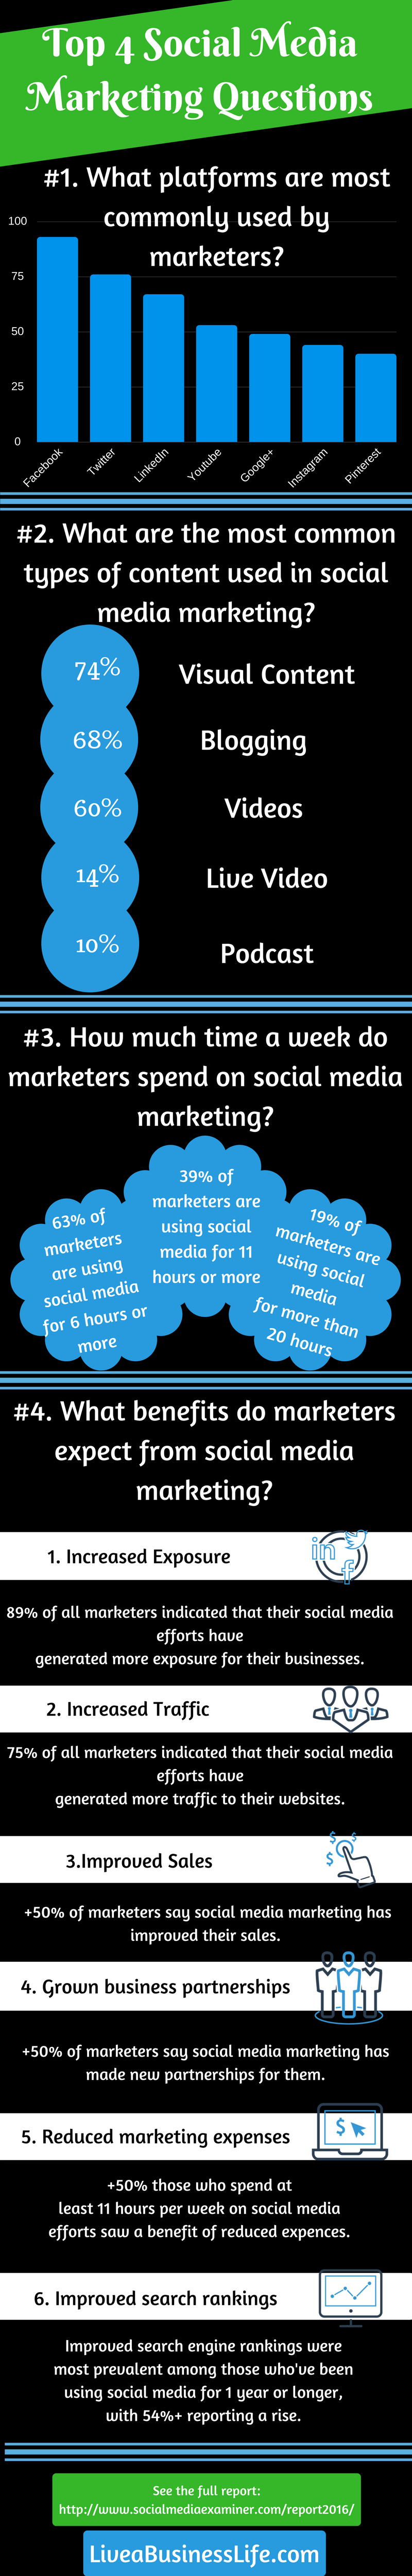 [Infographic]: Top 4 Social Media Marketing Questions -- LiveaBusinessLife.com